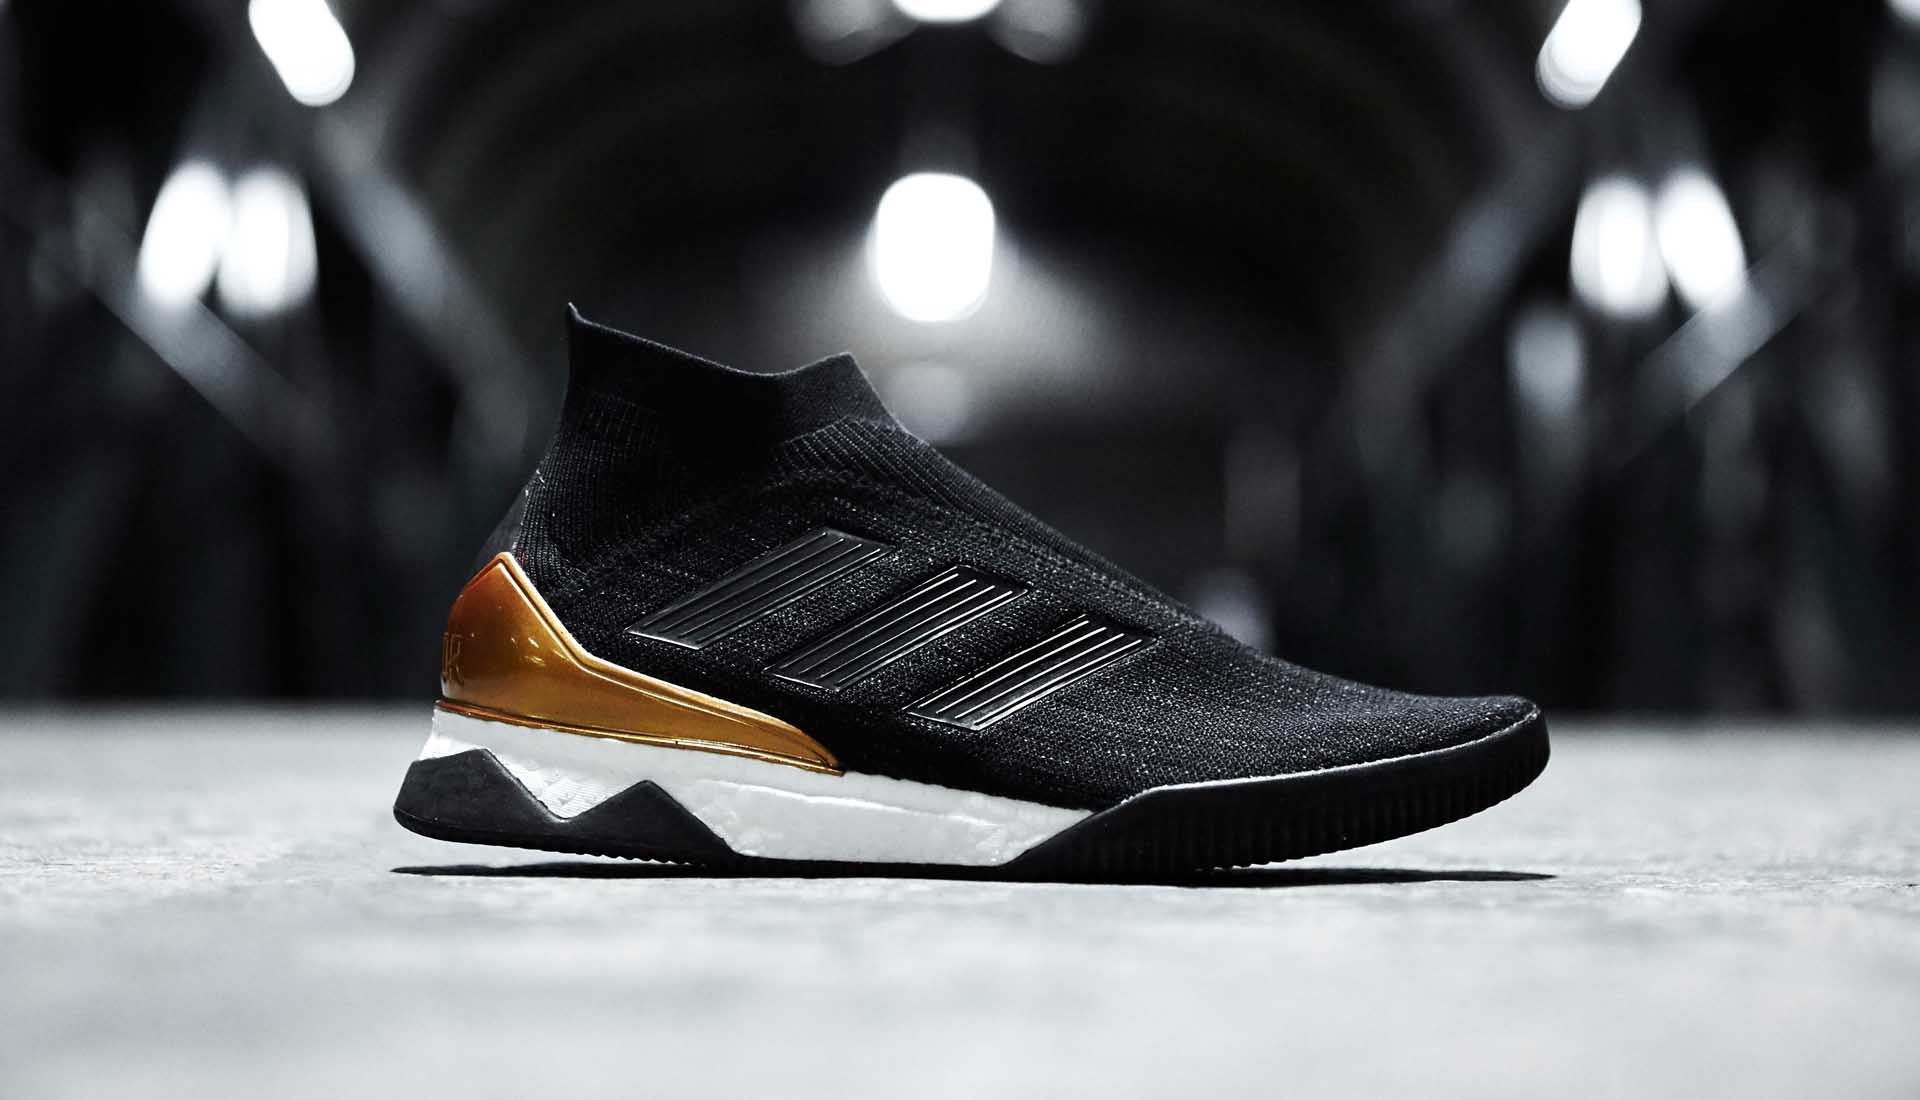 cf19a55c13b9 adidas Launch the Predator Tango 18+ UltraBoost - SoccerBible